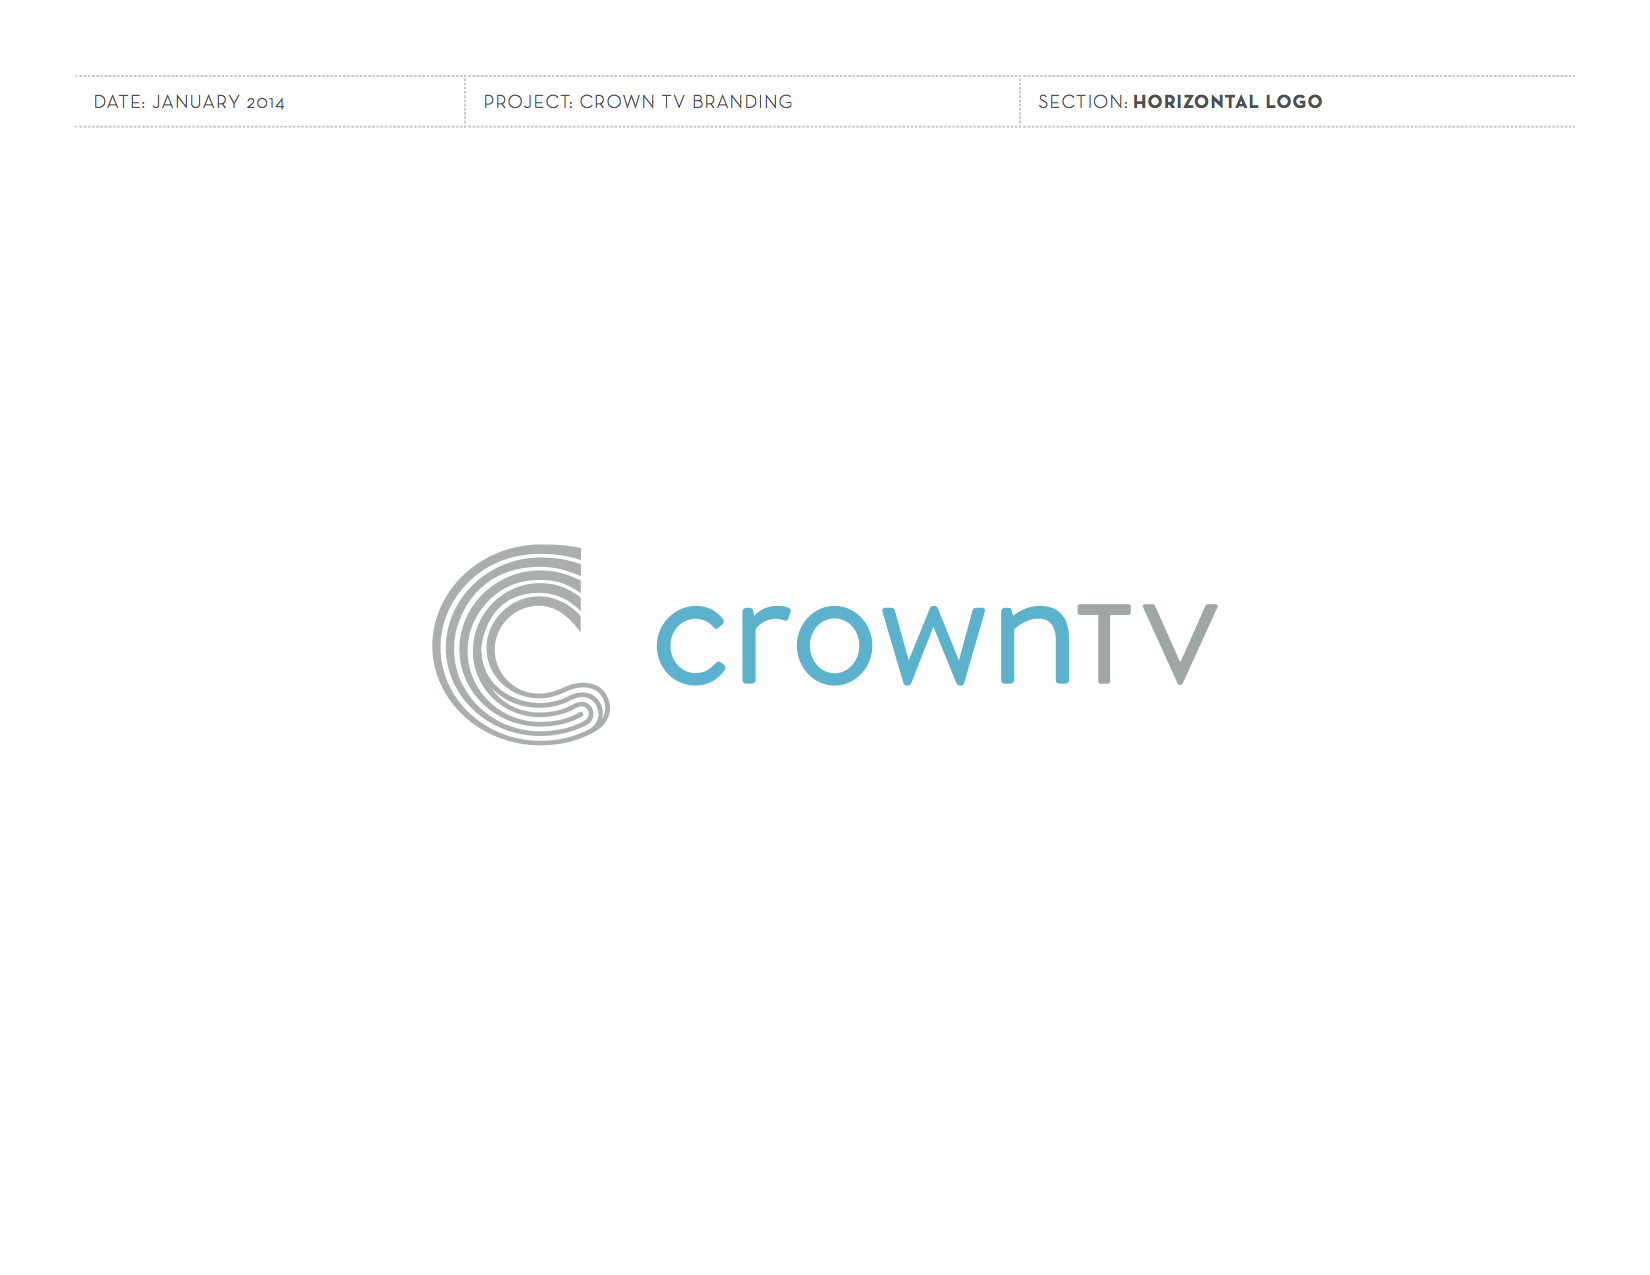 CrownTV - Branding Guide (dragged)